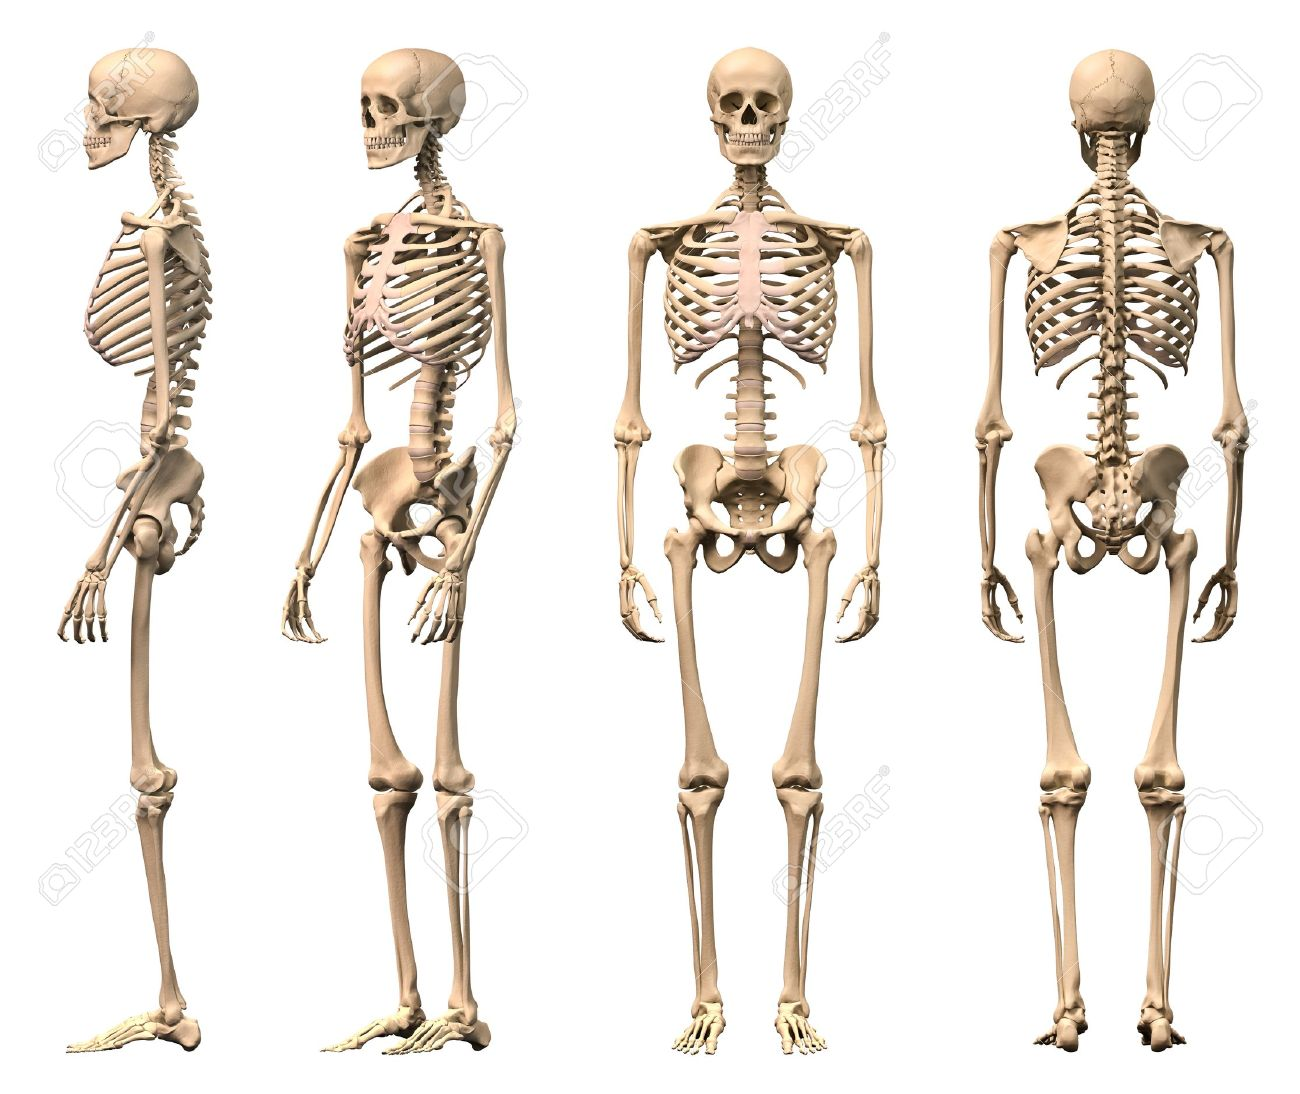 Skeletal anatomy diagram human male example electrical circuit male human skeleton four views front back side and perspective rh 123rf com human skeleton diagram rear view human skeleton diagram rear view ccuart Image collections